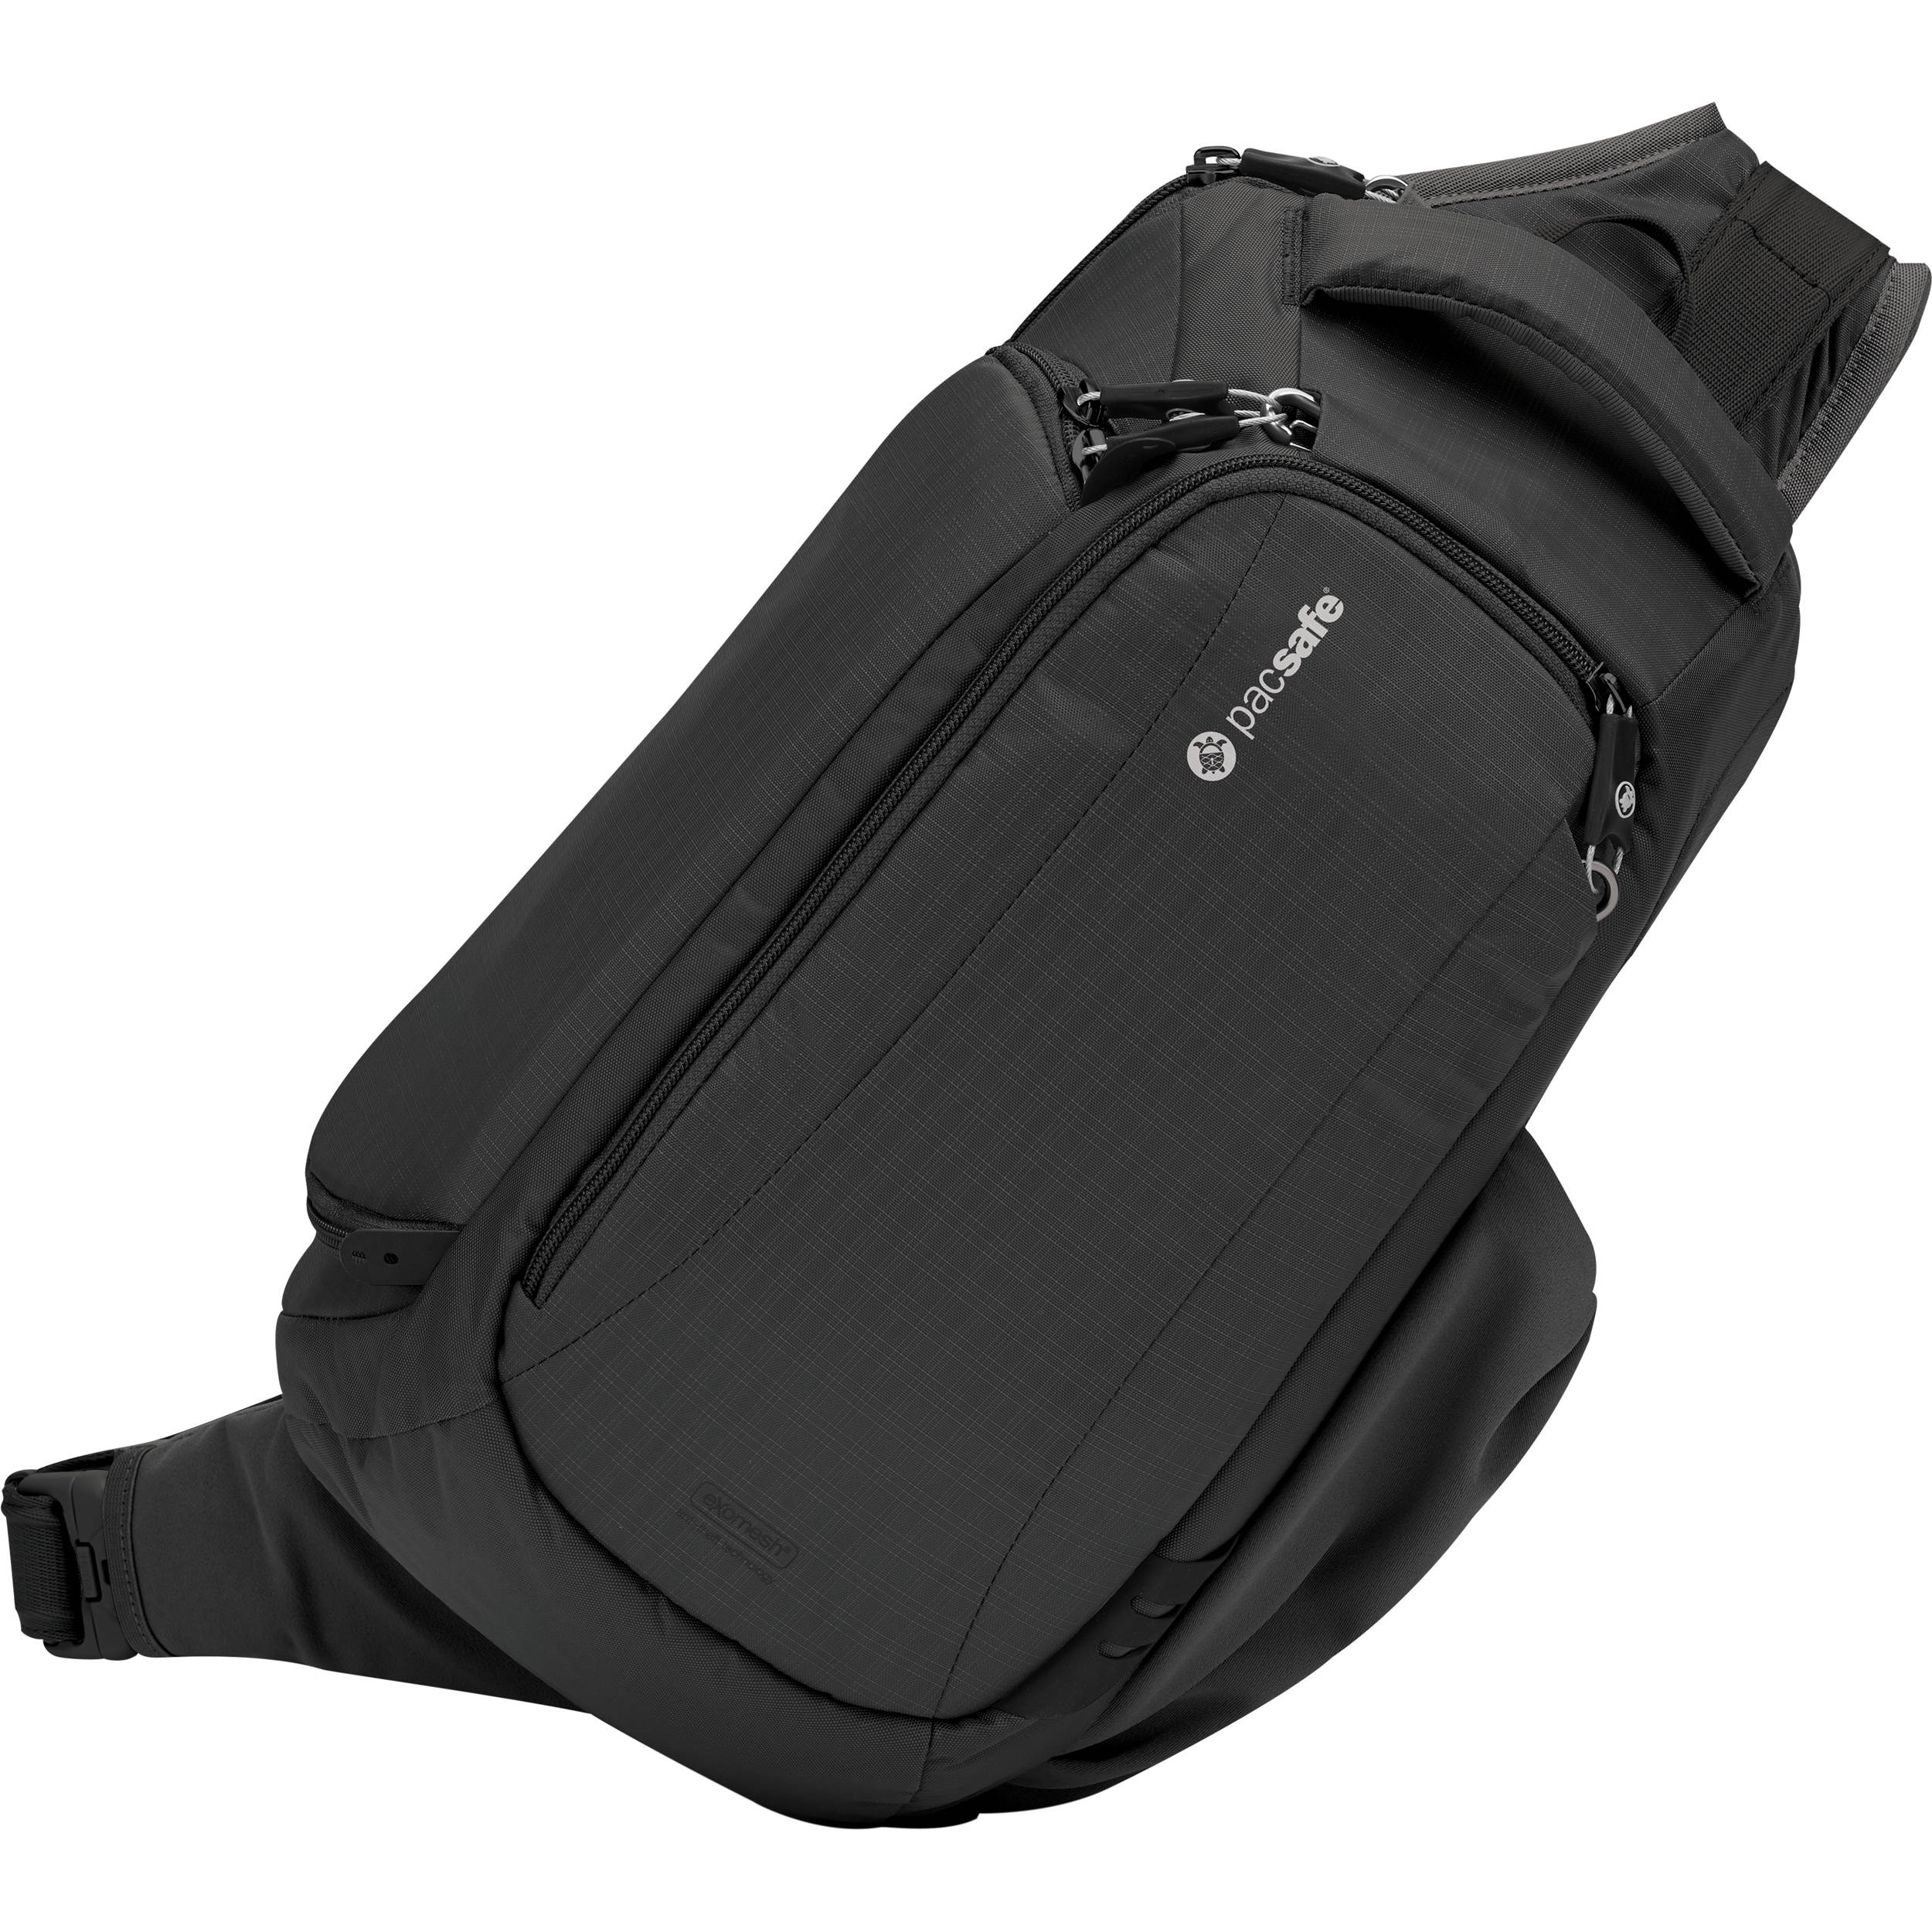 Pacsafe Camsafe V9 Anti-Theft Camera Sling Bag (Black) 15170100